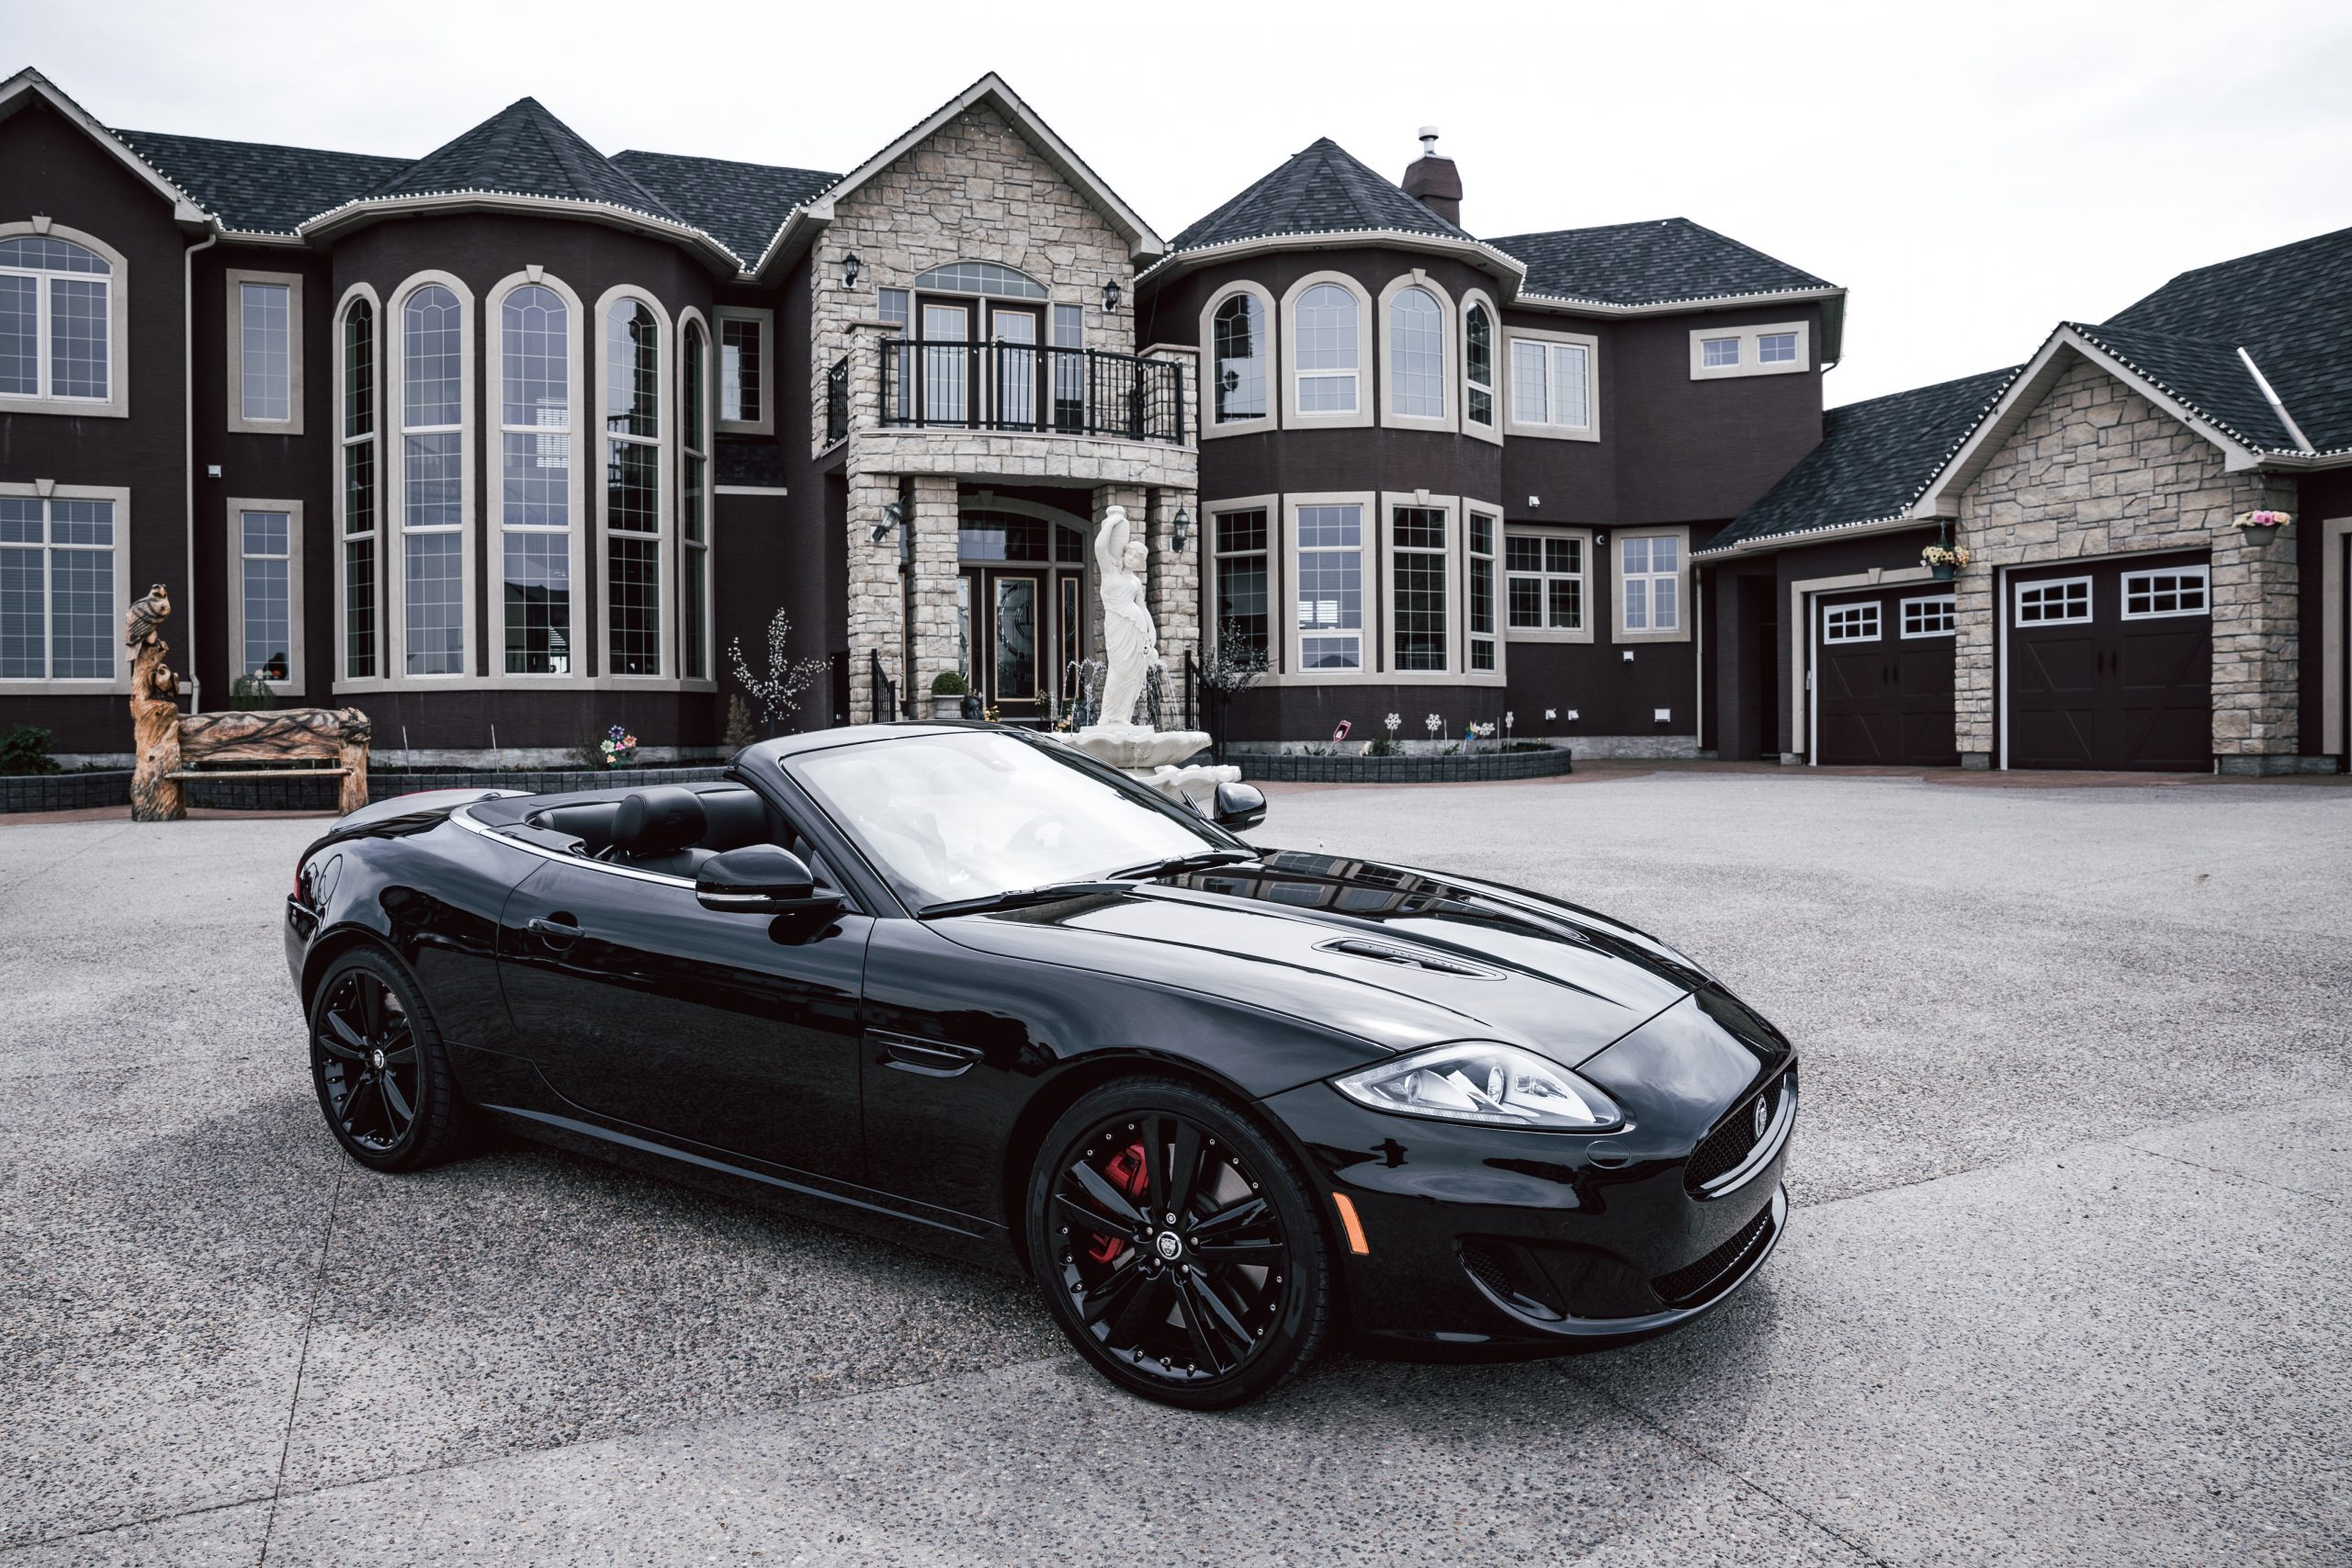 A quick snap on set with 14 year old rapper artist 'Swag Simer'. While taking some . behind the scenes photos, we decided to stop and snap a picture of this Maserati in front of a huge mansion in Calgary, Alberta, Canada. IG: @VisualsByRoyalZ